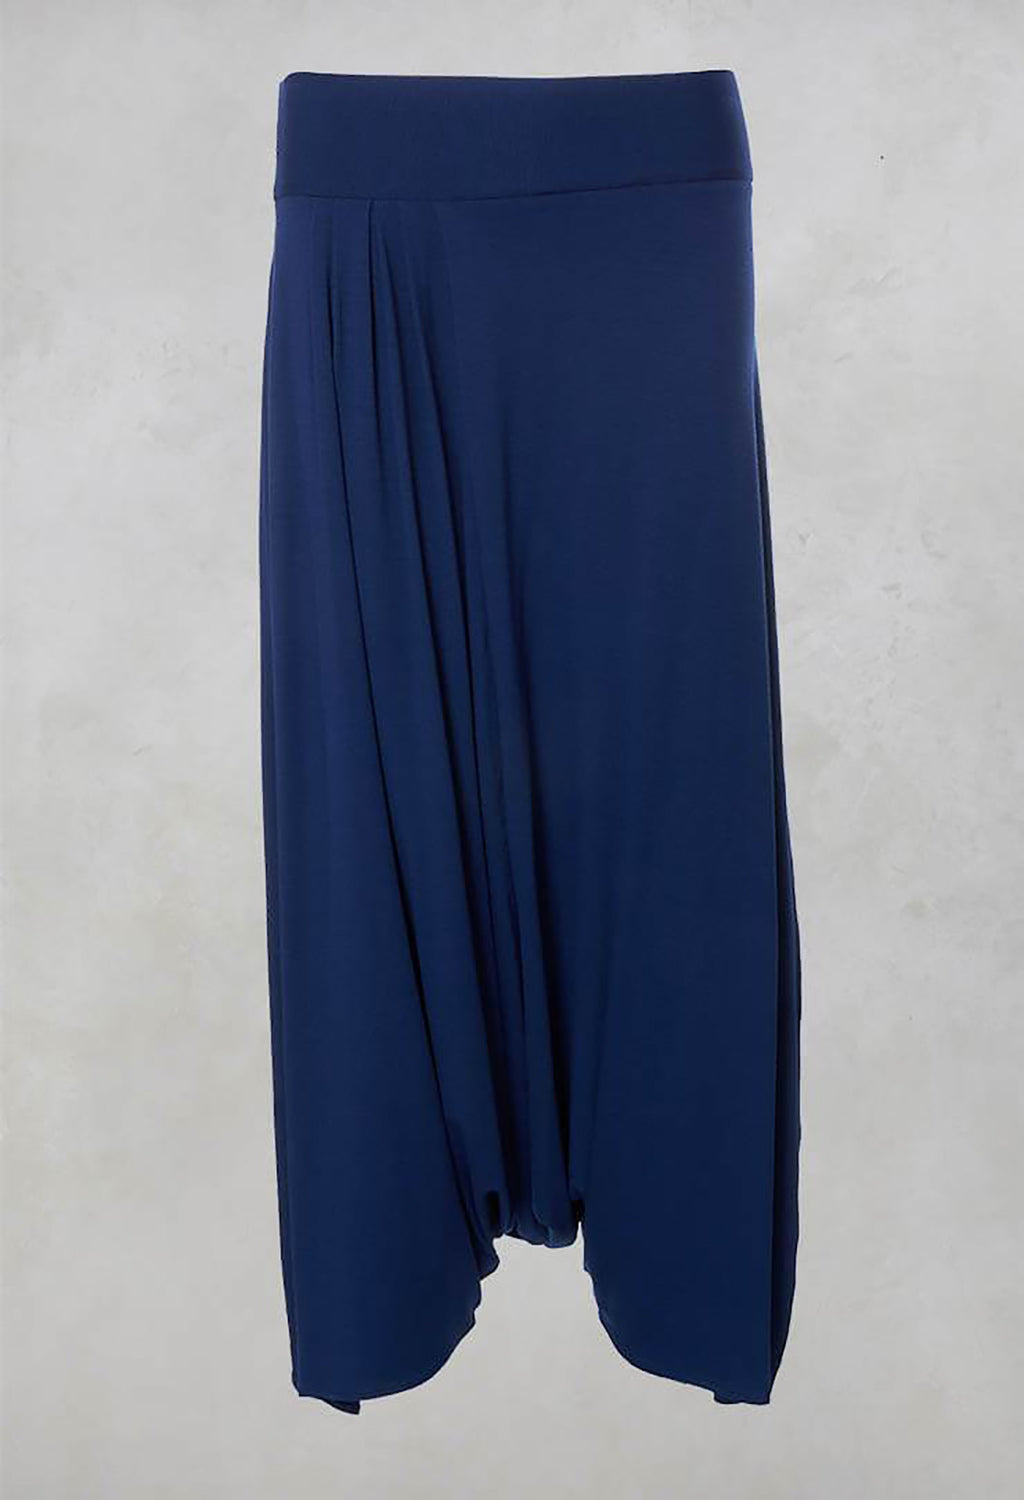 Drop Crotch Hareem Pants with Wide Waistband in Blue